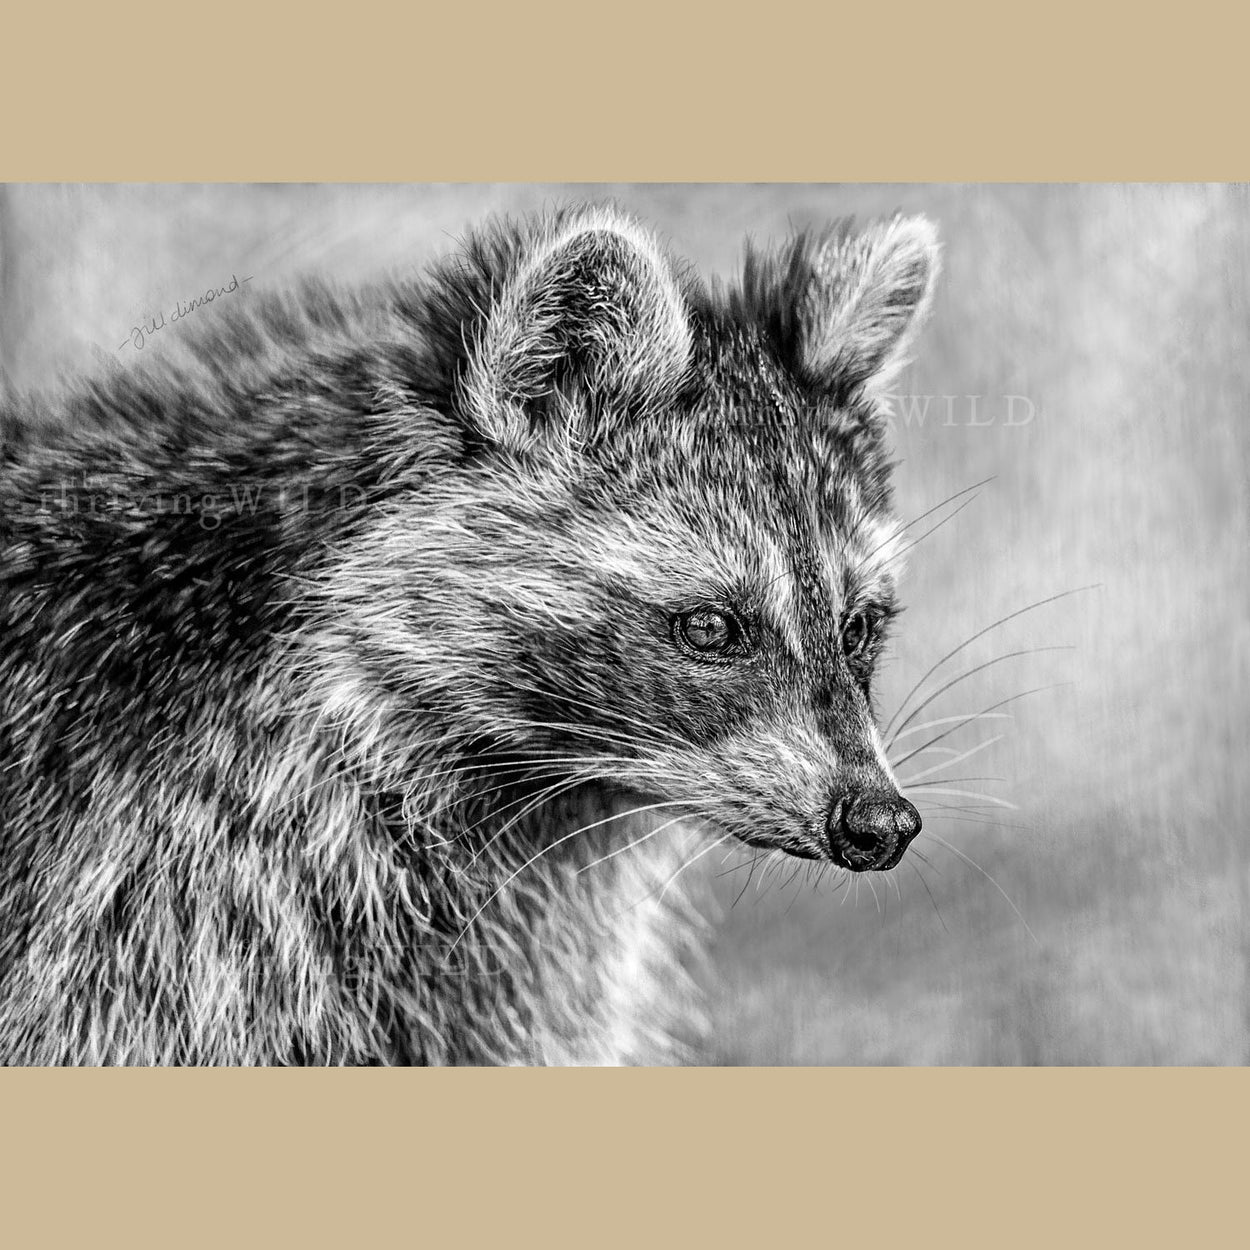 Raccoon Wildlife Digital Procreate Drawing - The Thriving Wild